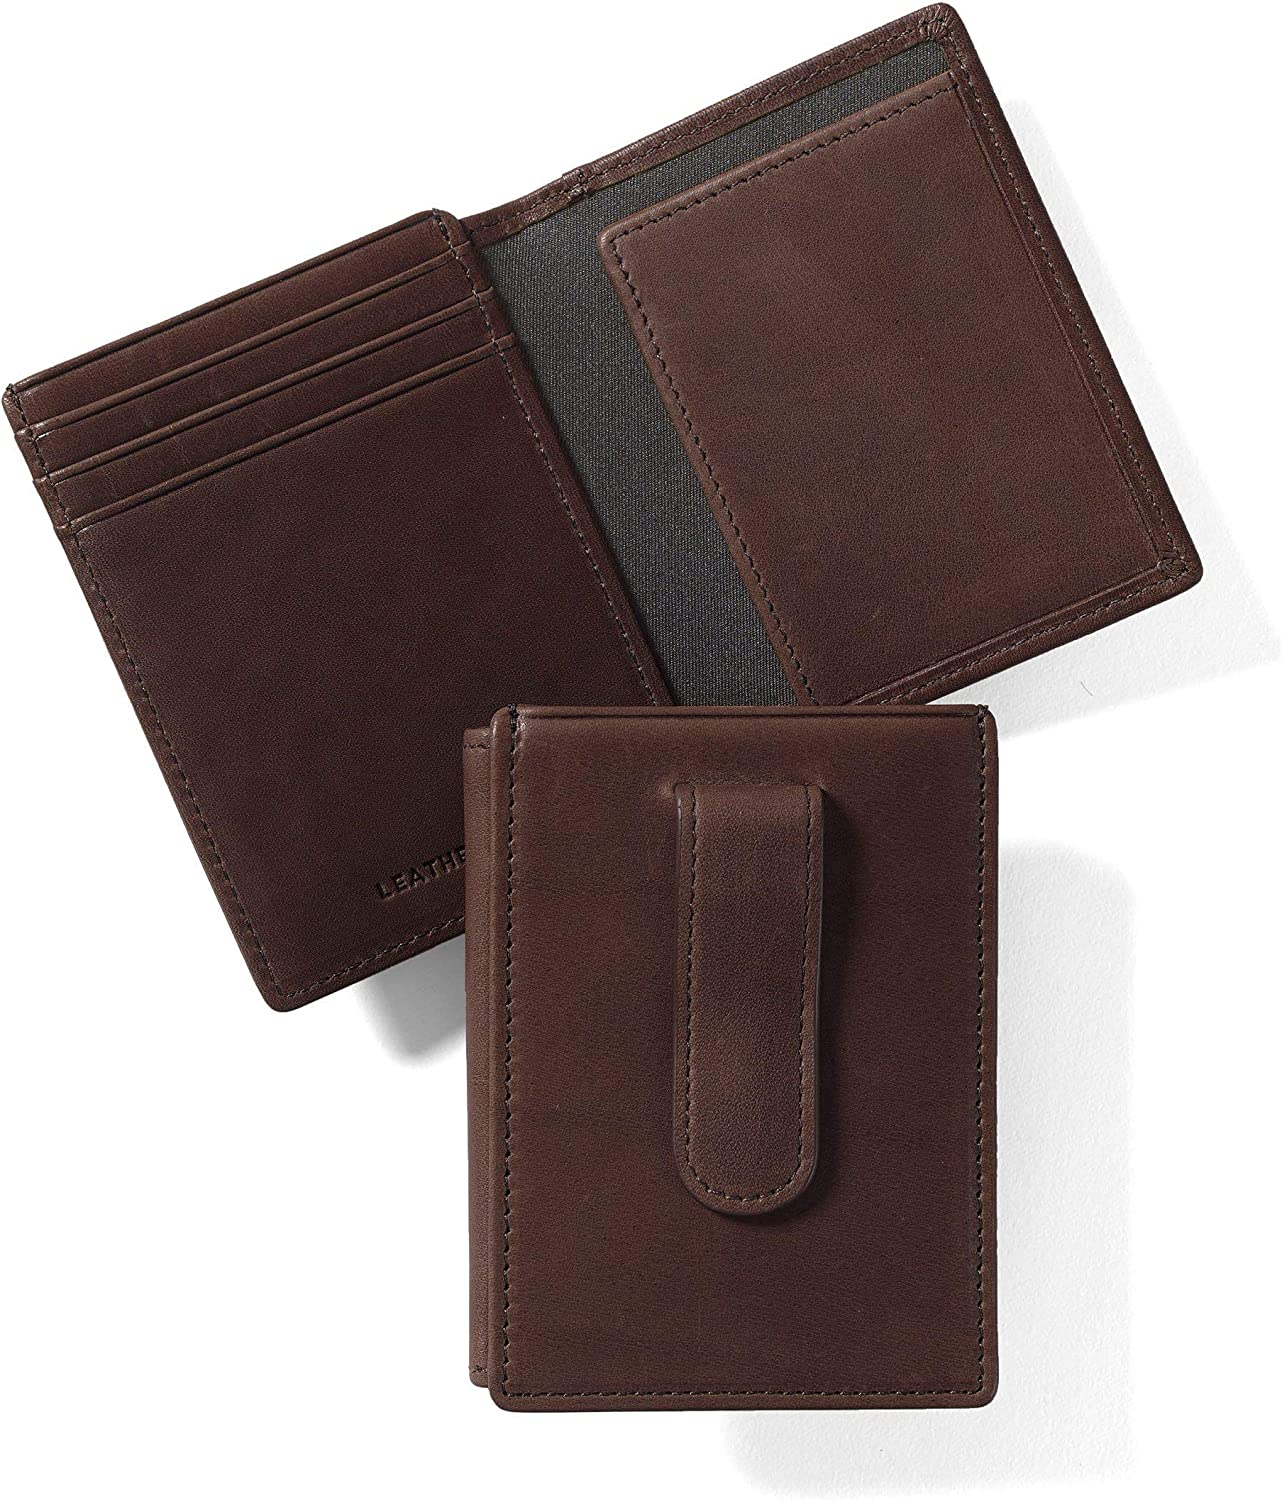 Leatherology Mahogany Men's Money Clip Card Holder Wallet with ID Window